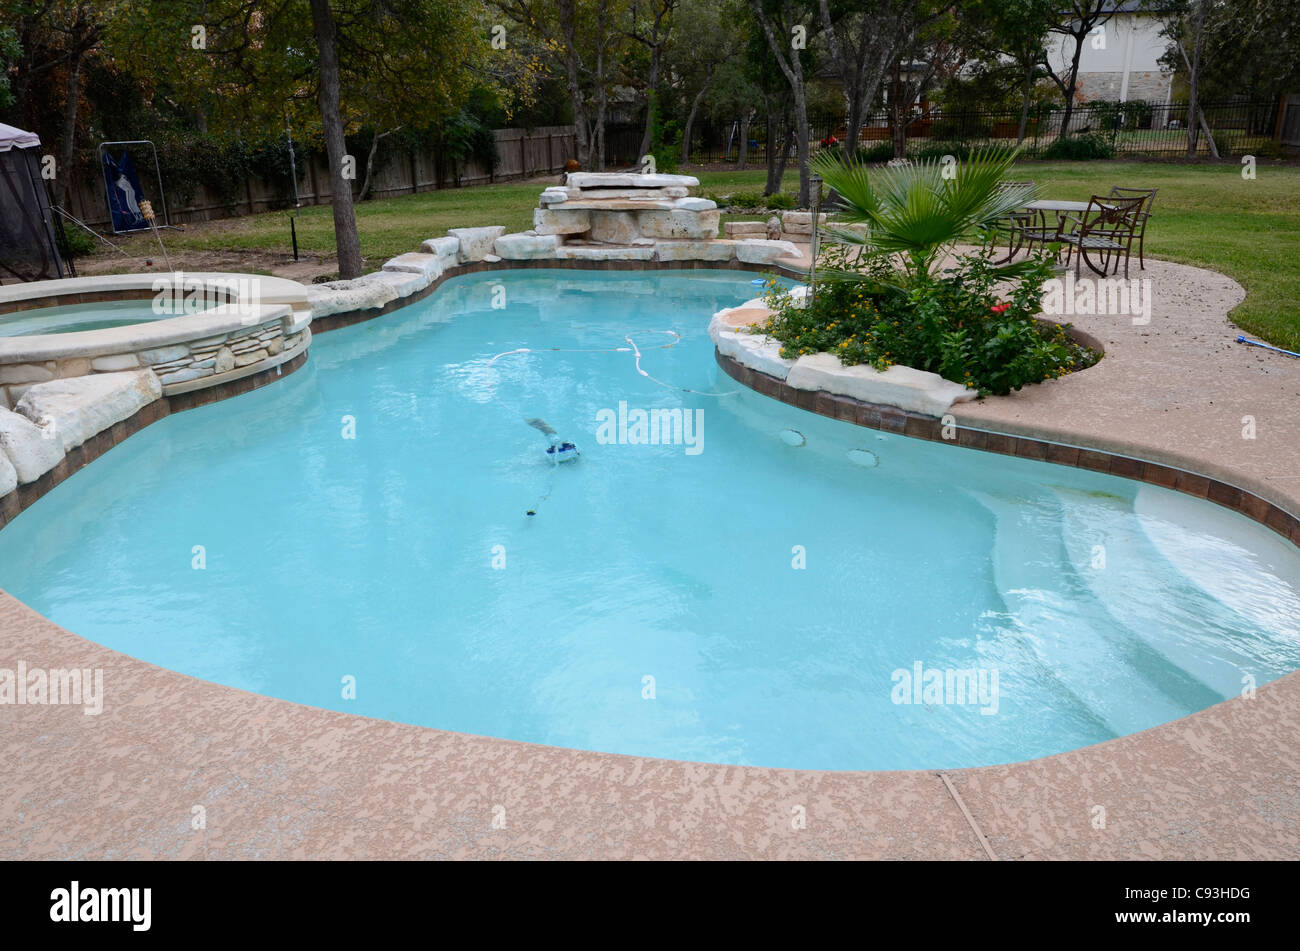 Upscale Backyard Kidney Shaped Swimming Pool With Hot Tub Plants And Stock Photo Alamy